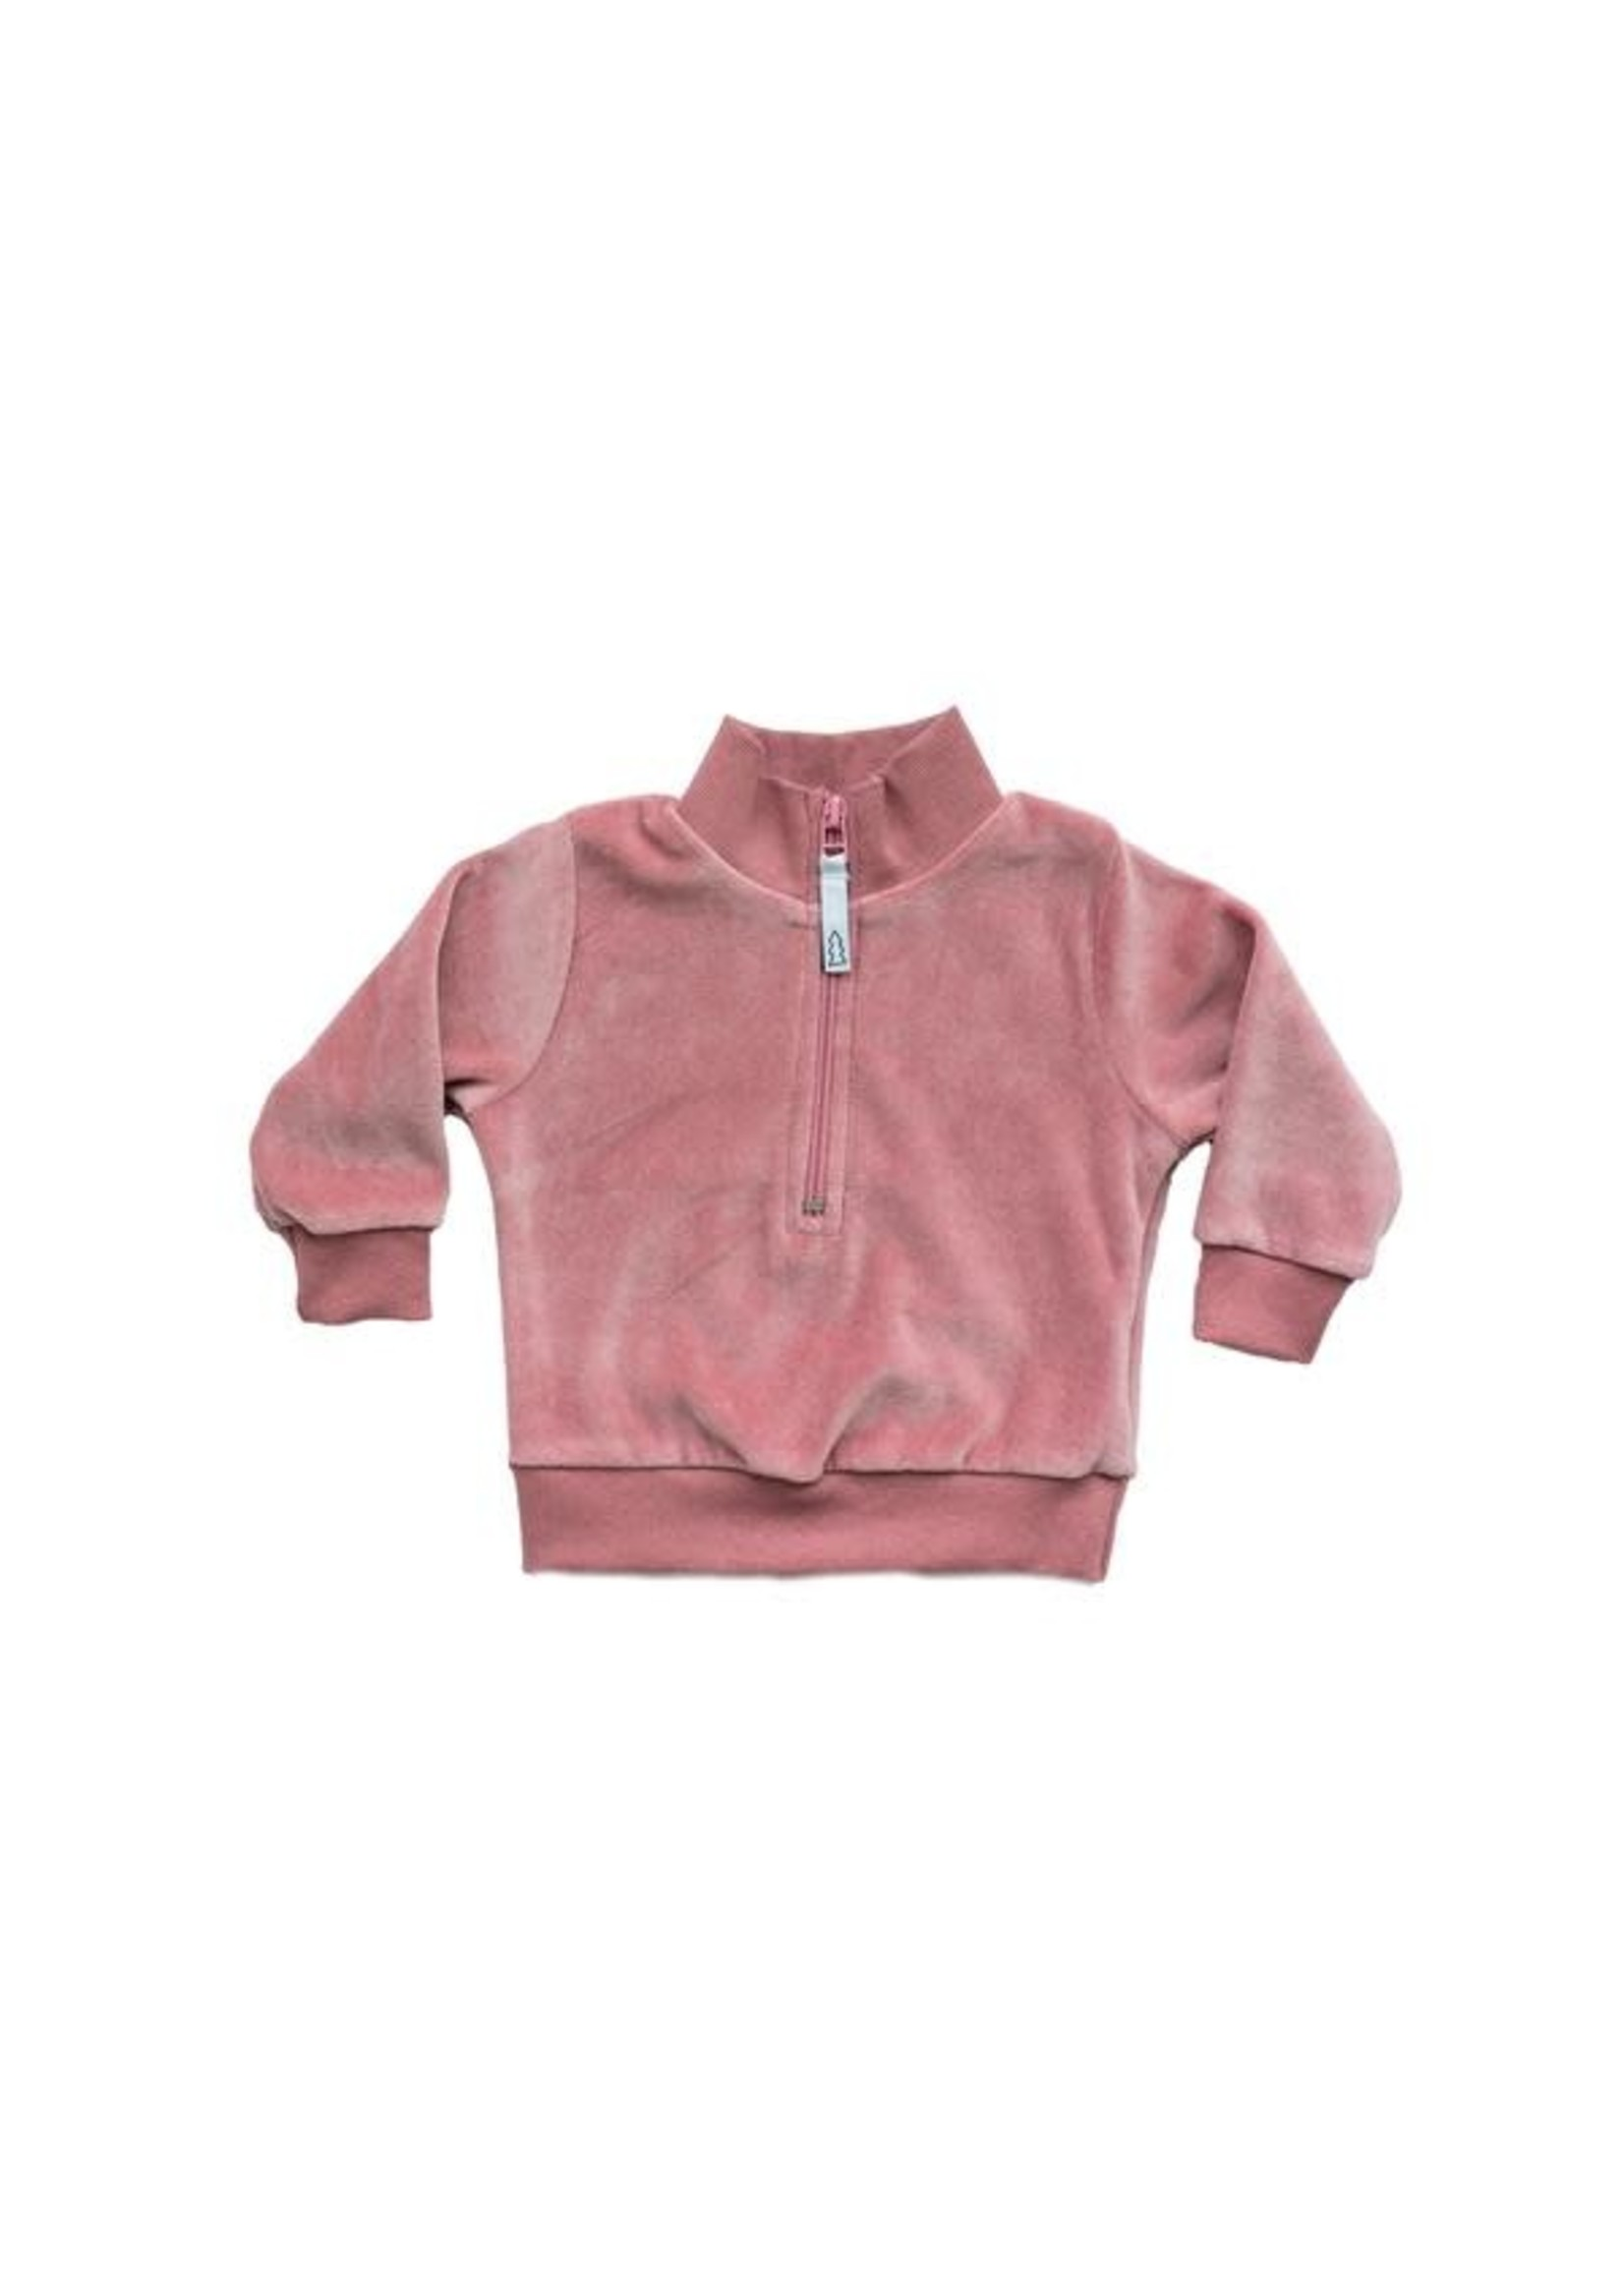 North Kinder NK Velour Zip Sweater (Cotton Candy)